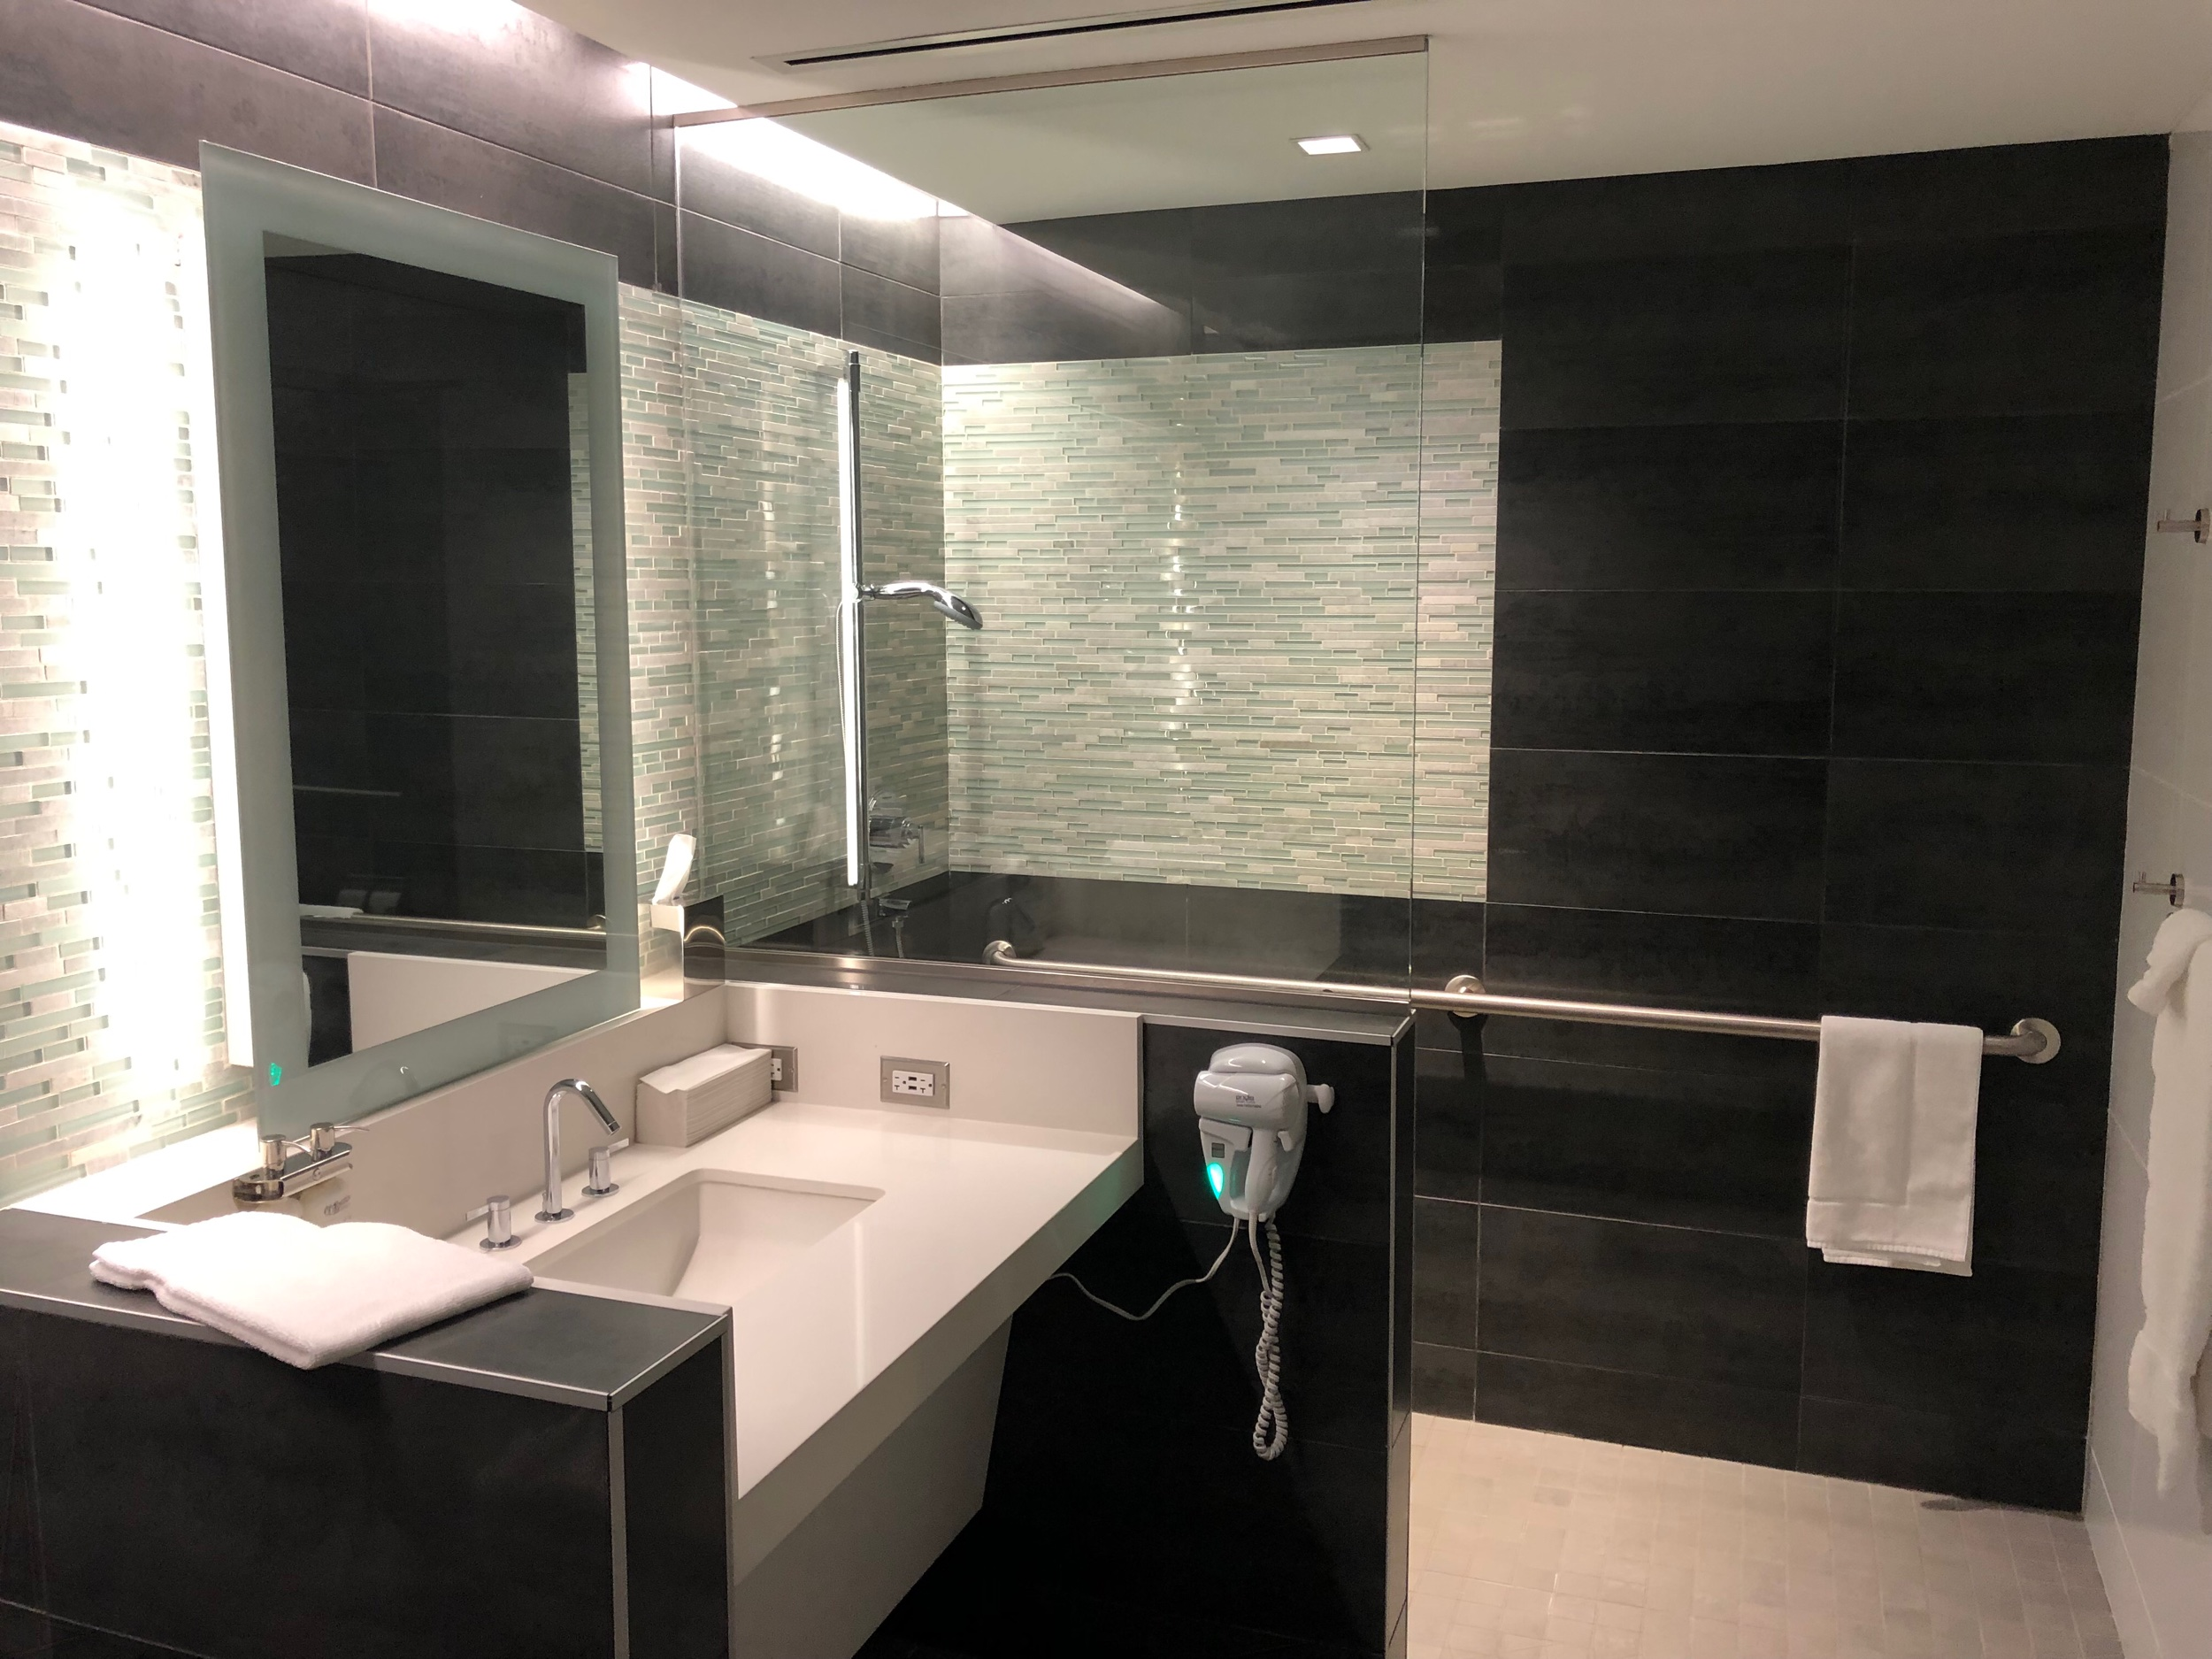 Shower room inside the American Airlines Flagship Lounge